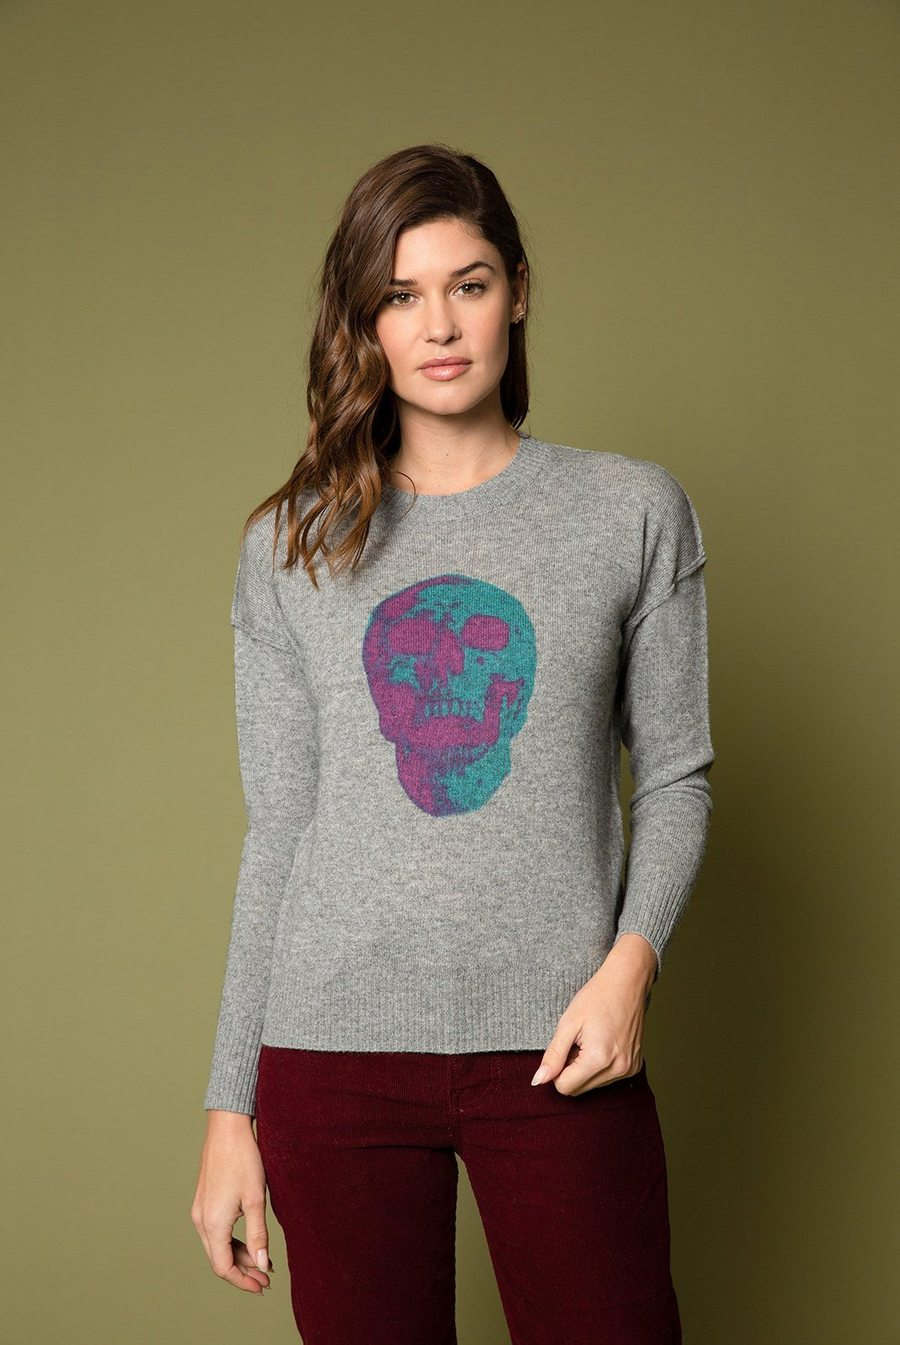 27 Miles Virginia Distressed Pullover with Skull Graphic